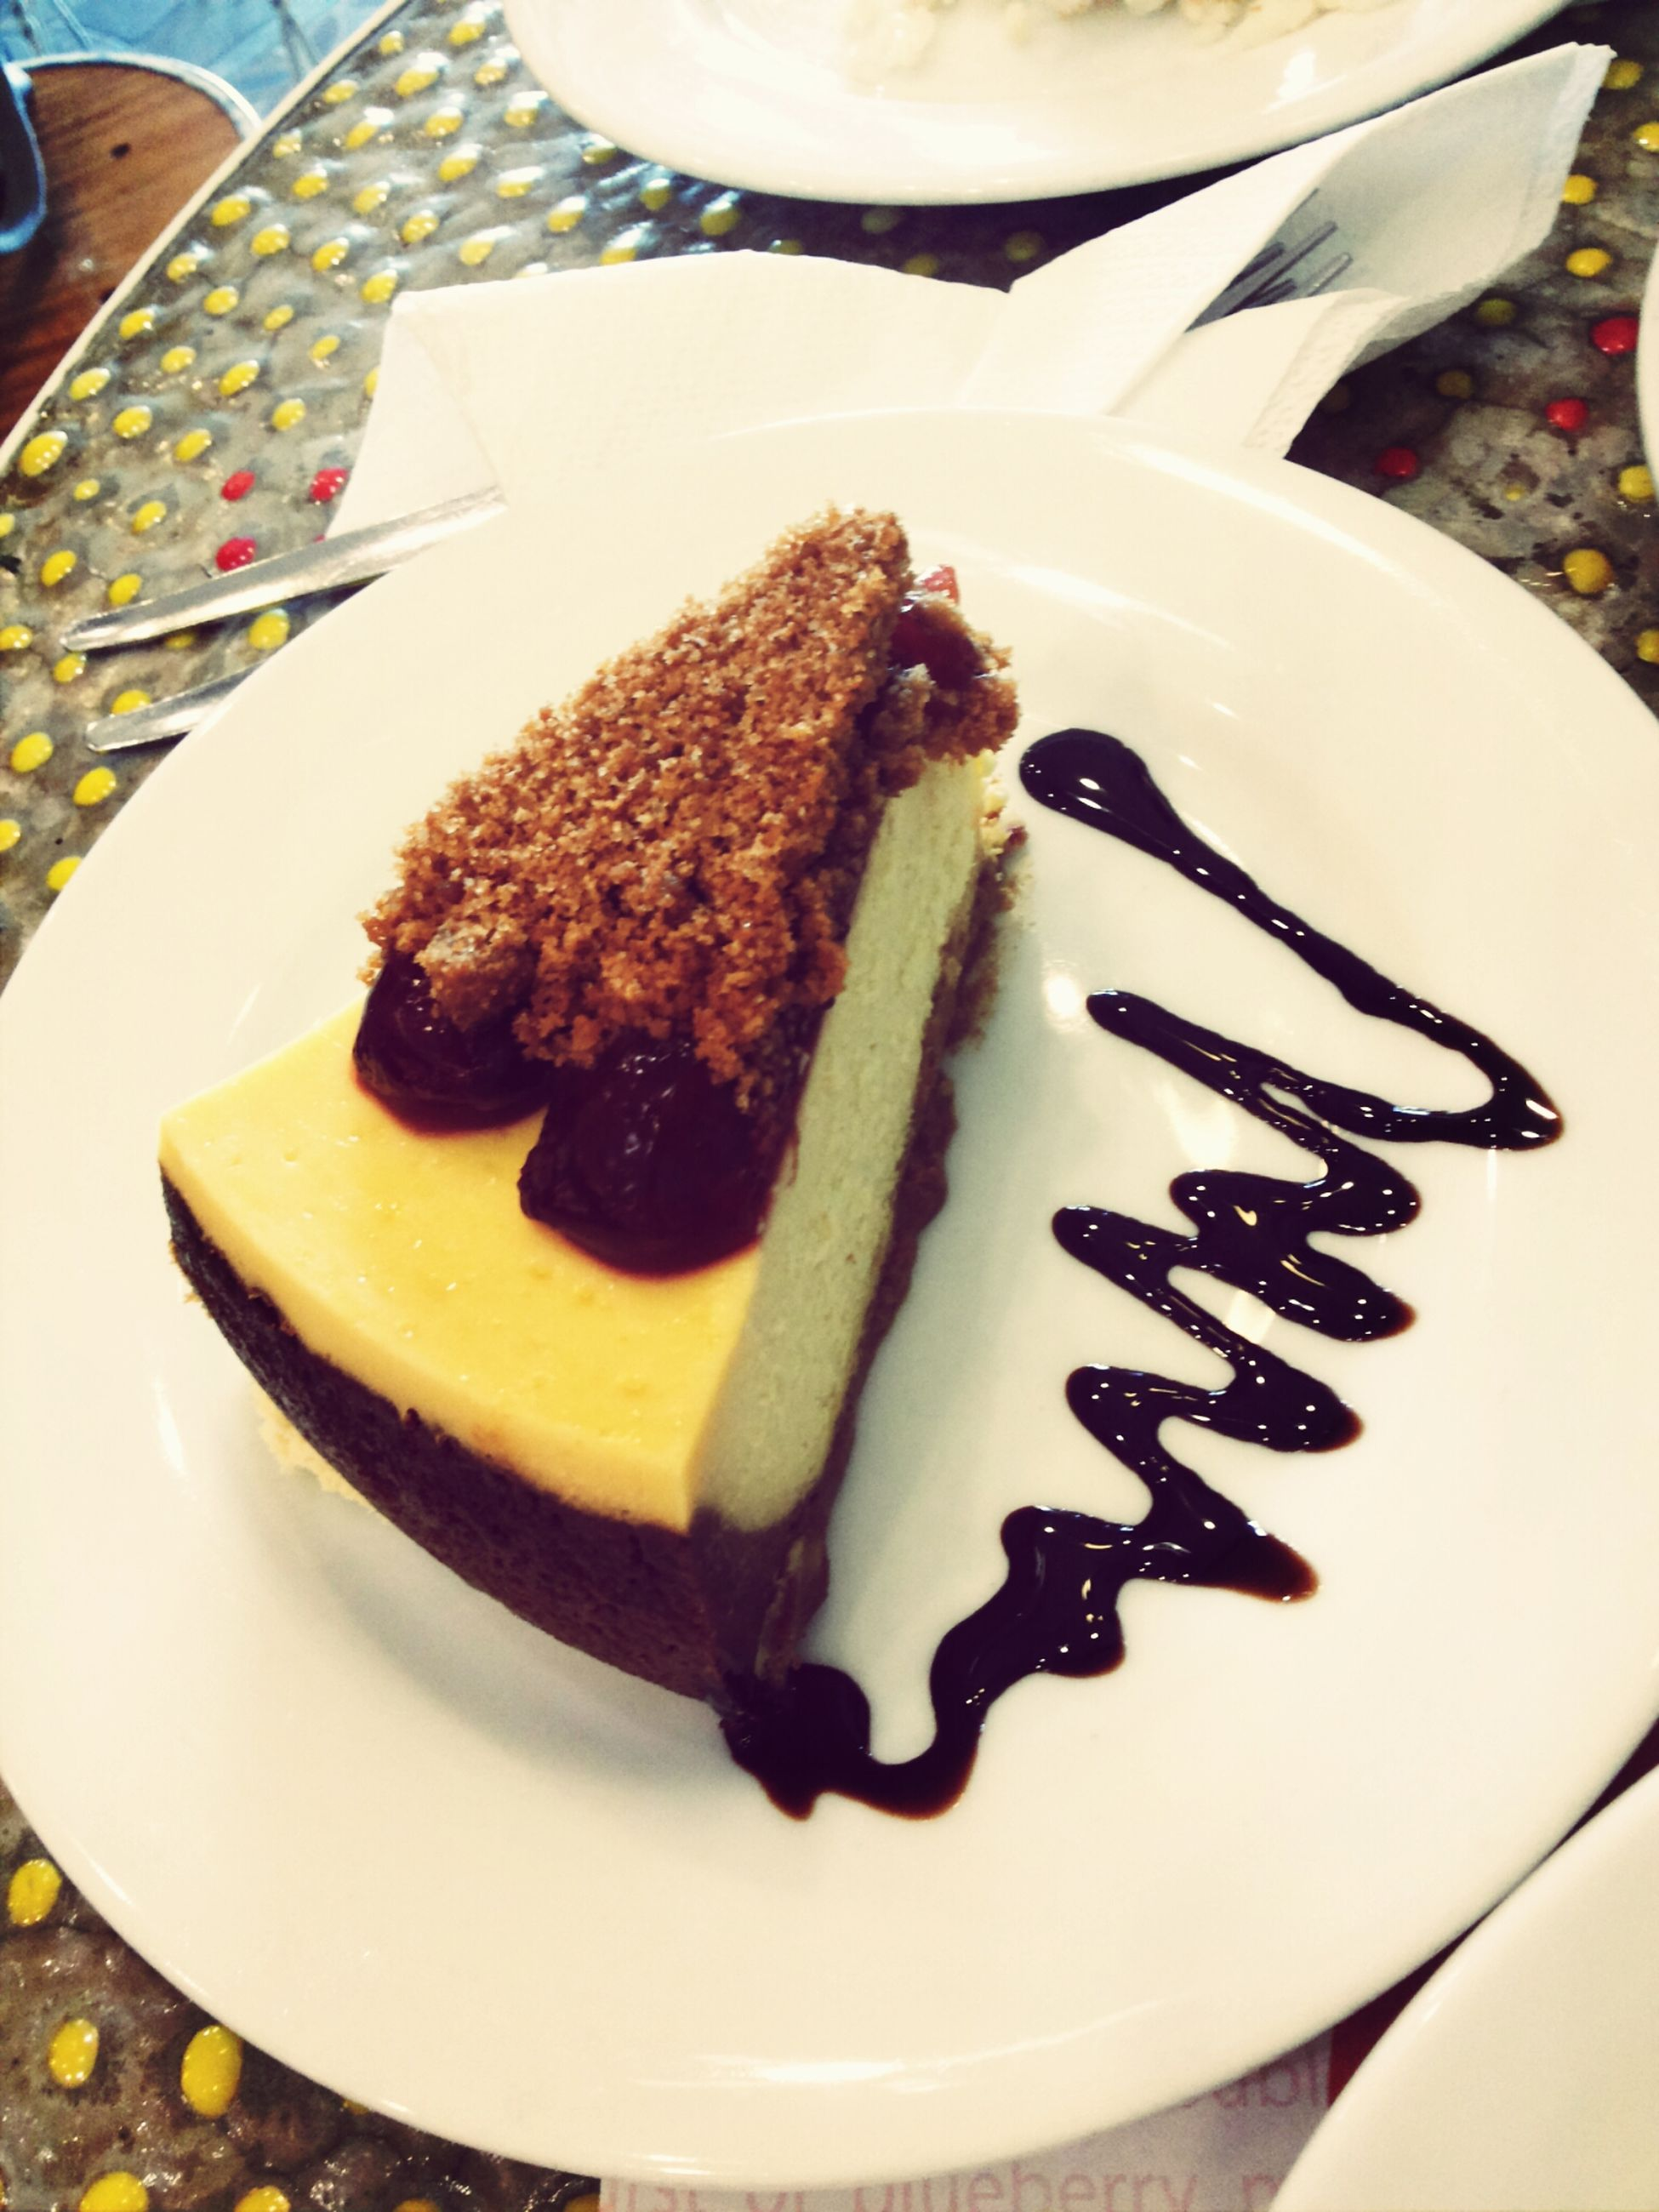 food and drink, food, freshness, ready-to-eat, plate, indoors, indulgence, sweet food, still life, dessert, unhealthy eating, serving size, close-up, temptation, cake, high angle view, fork, meal, table, chocolate